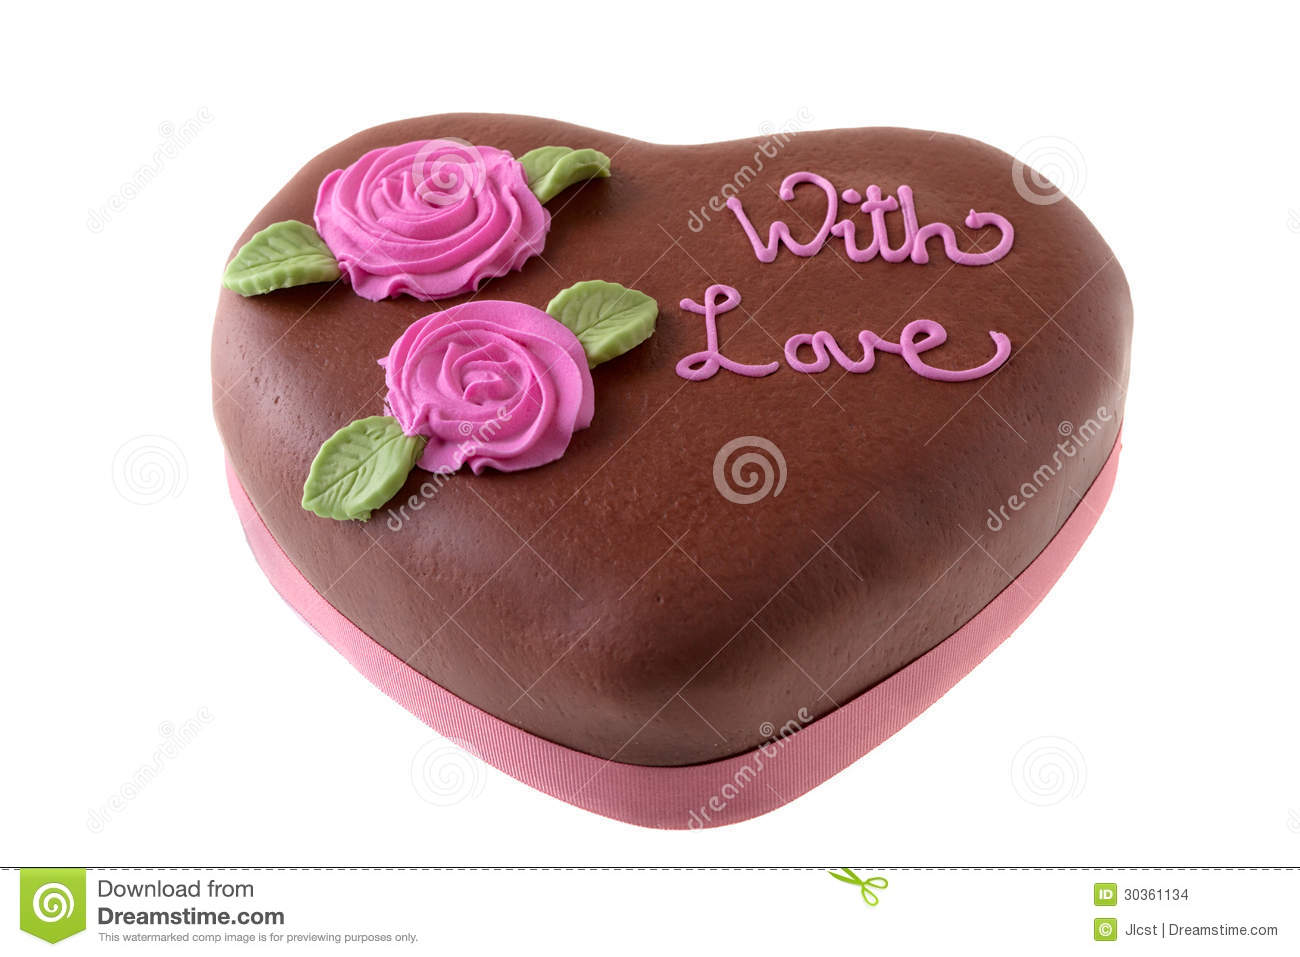 Phenomenal Chocolate Cake Heart Shape With Icing Sugar Flowers Stock Photo Funny Birthday Cards Online Alyptdamsfinfo